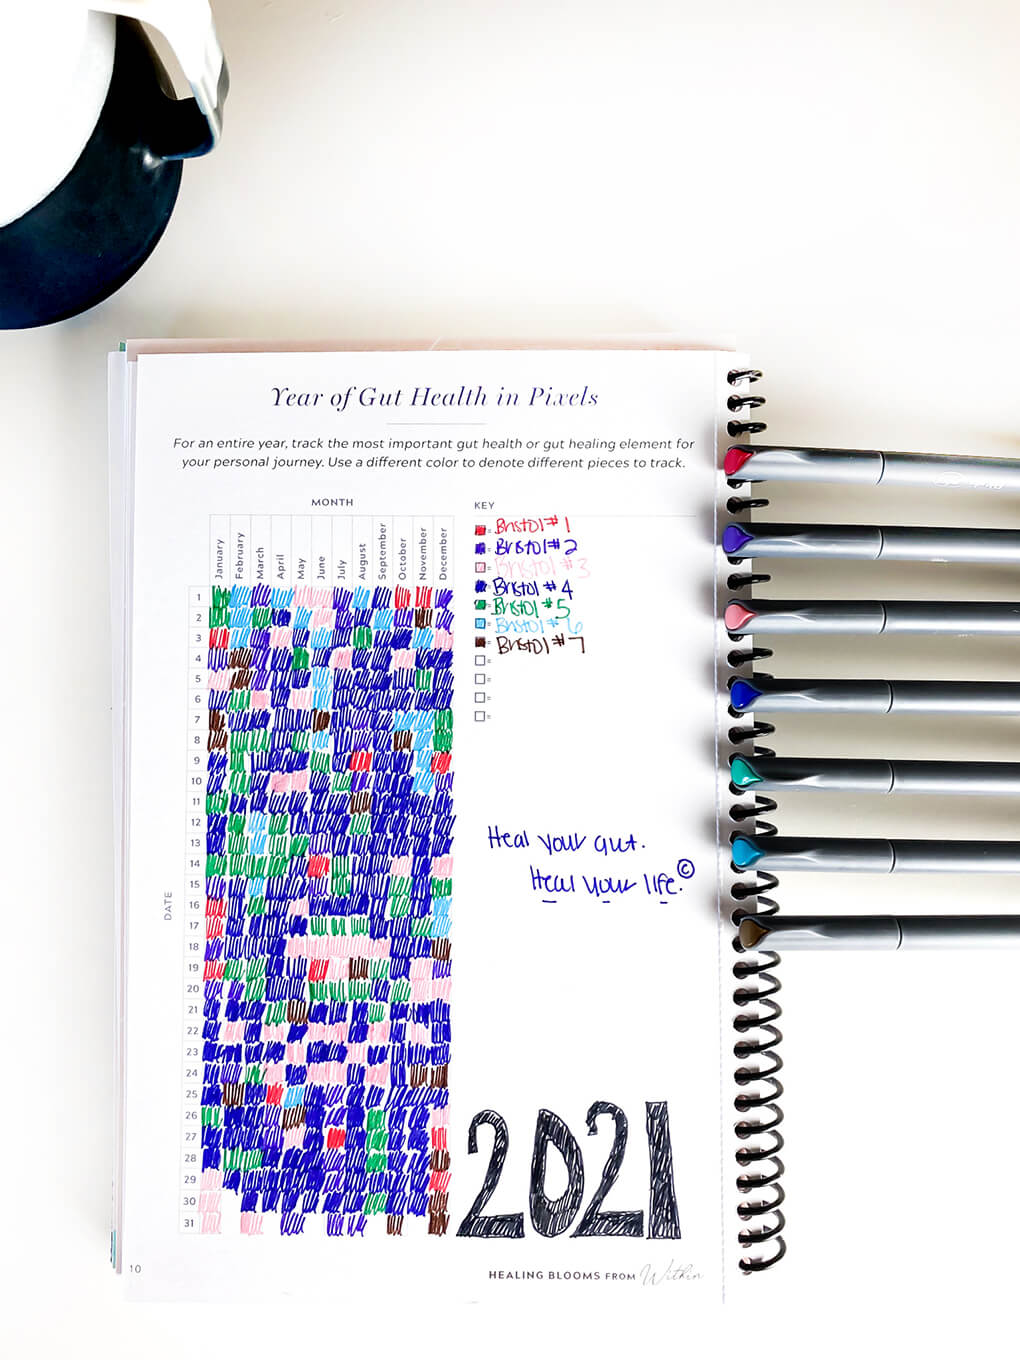 11 Yearly Gut Health Tracker Bullet Journal Ideas agutsygirl.com 90-day journal #bujo #guthealth #journaling